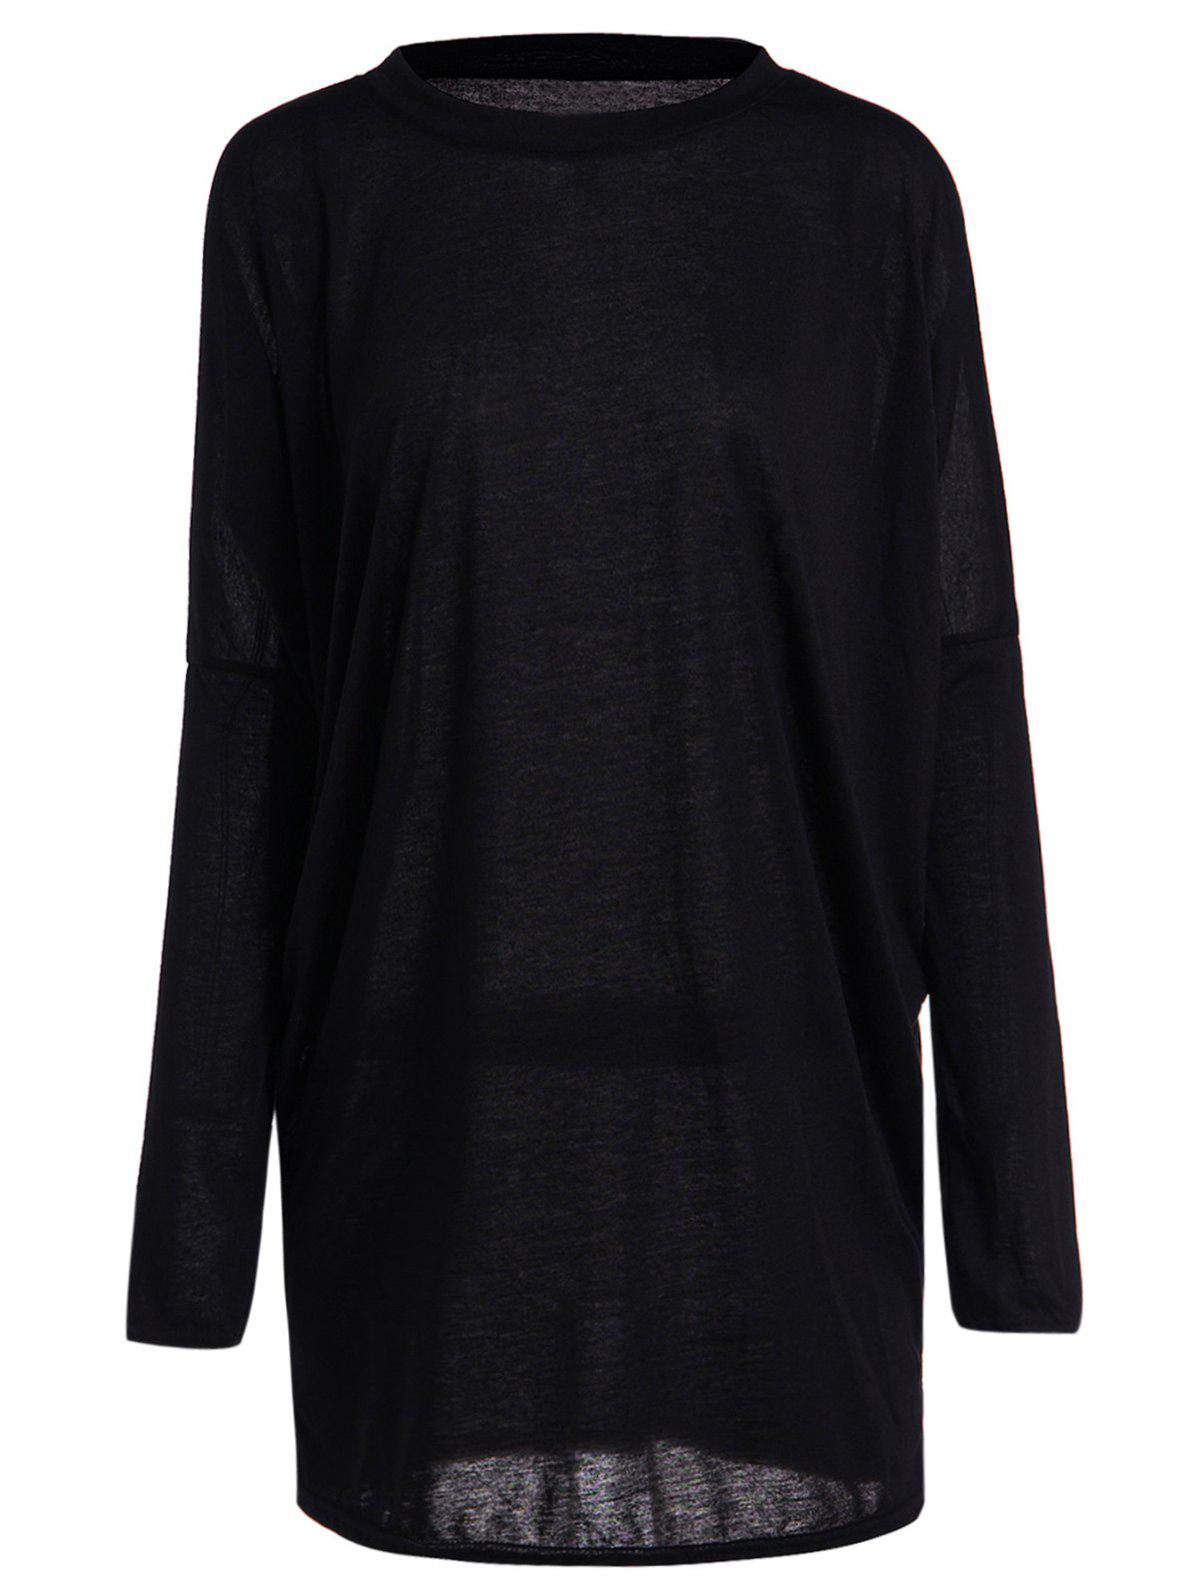 Casual Pleated Batwing Sleeve Pure Color T-Shirt For Women - M BLACK